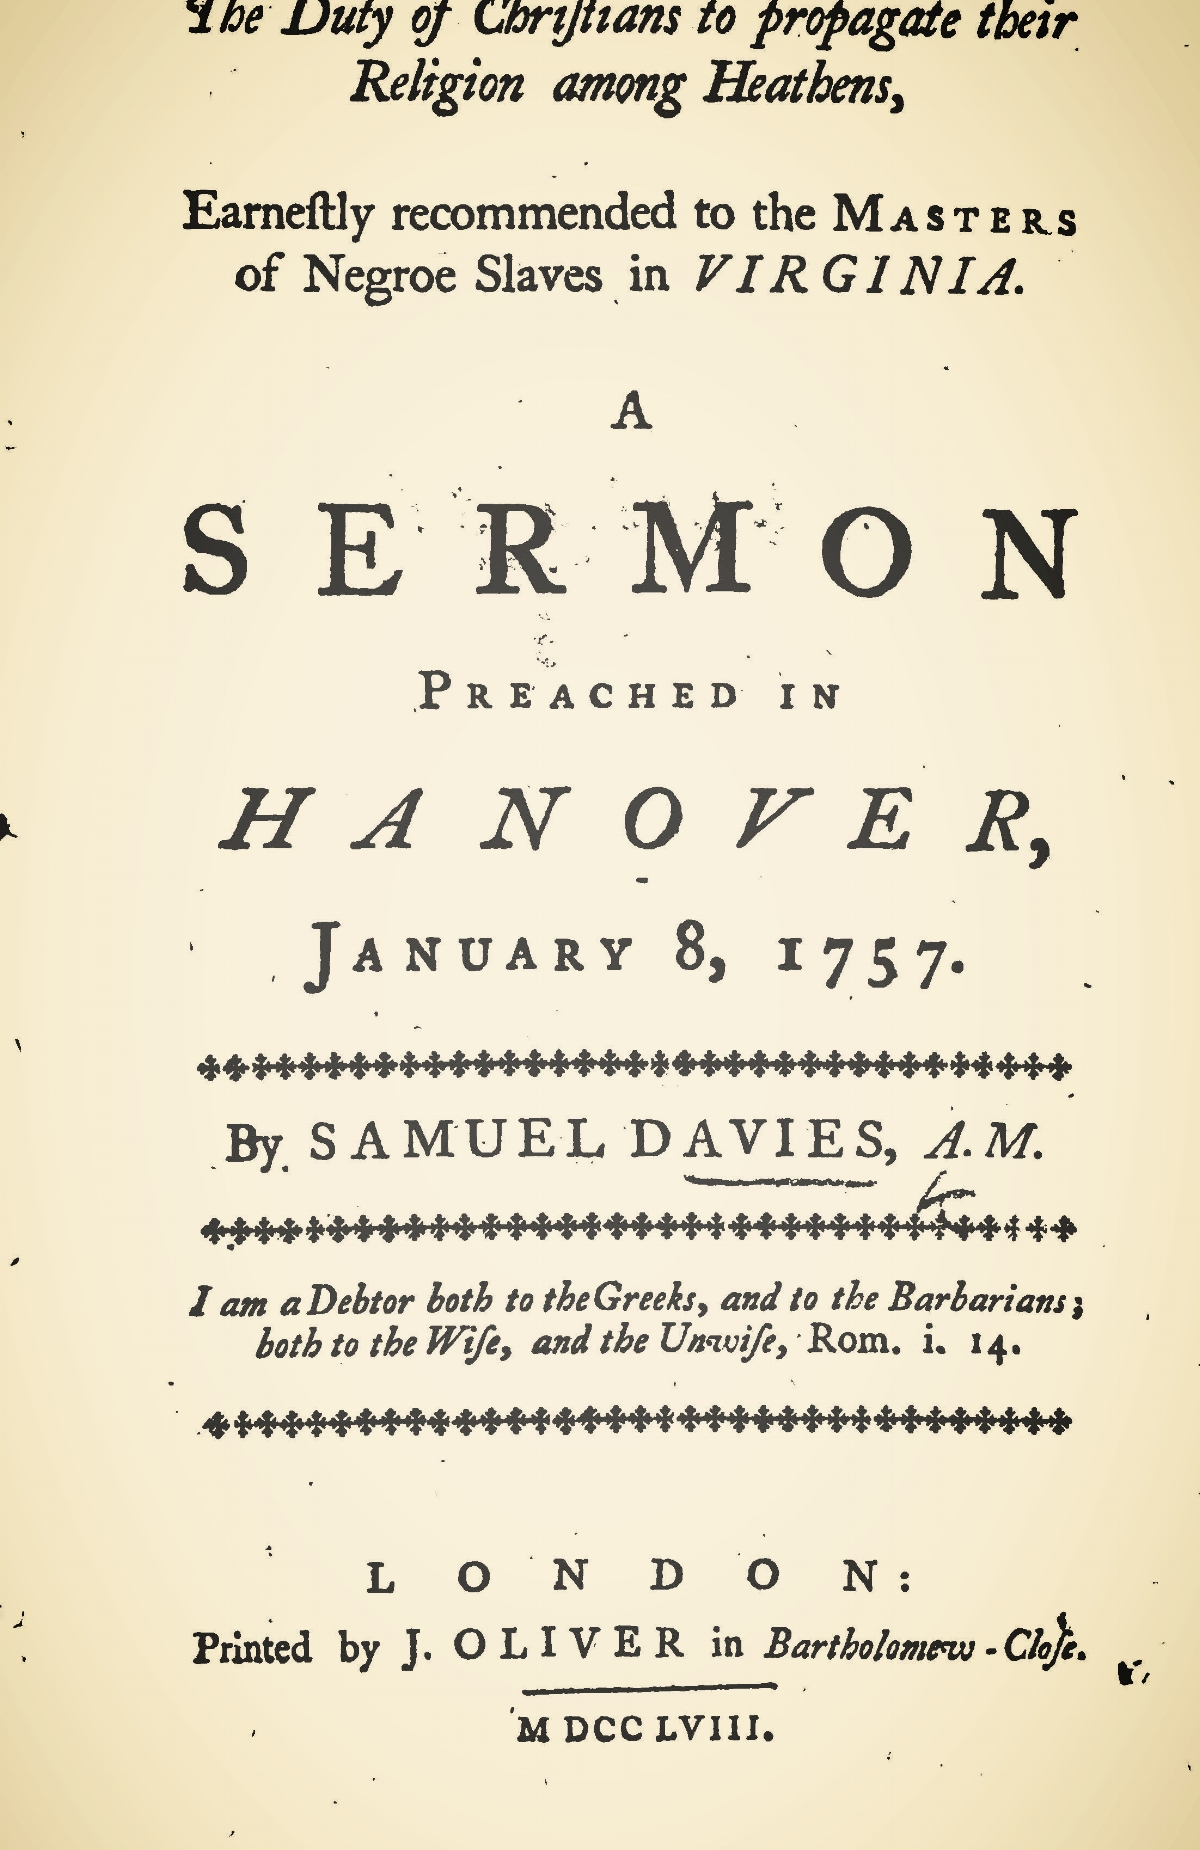 Davies, Samuel, The Duty of Christians to Propagate Their Religion Among Heathens Title Page.jpg